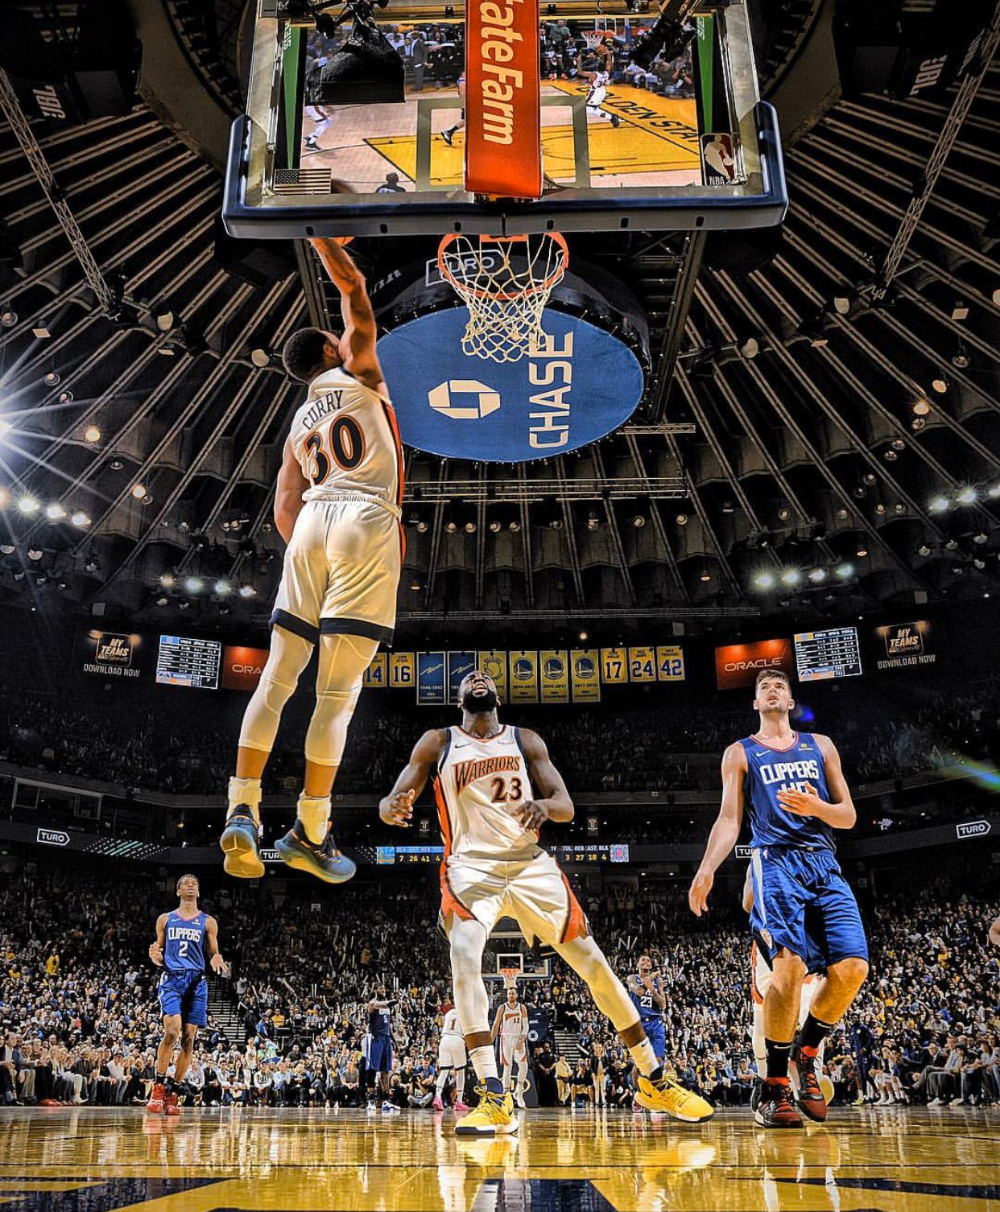 Warriorsworld On Twitter Basketball Pictures Stephen Curry Stephen Curry Dunk New scratcher joined 3 weeks, 5 days ago united states. basketball pictures stephen curry